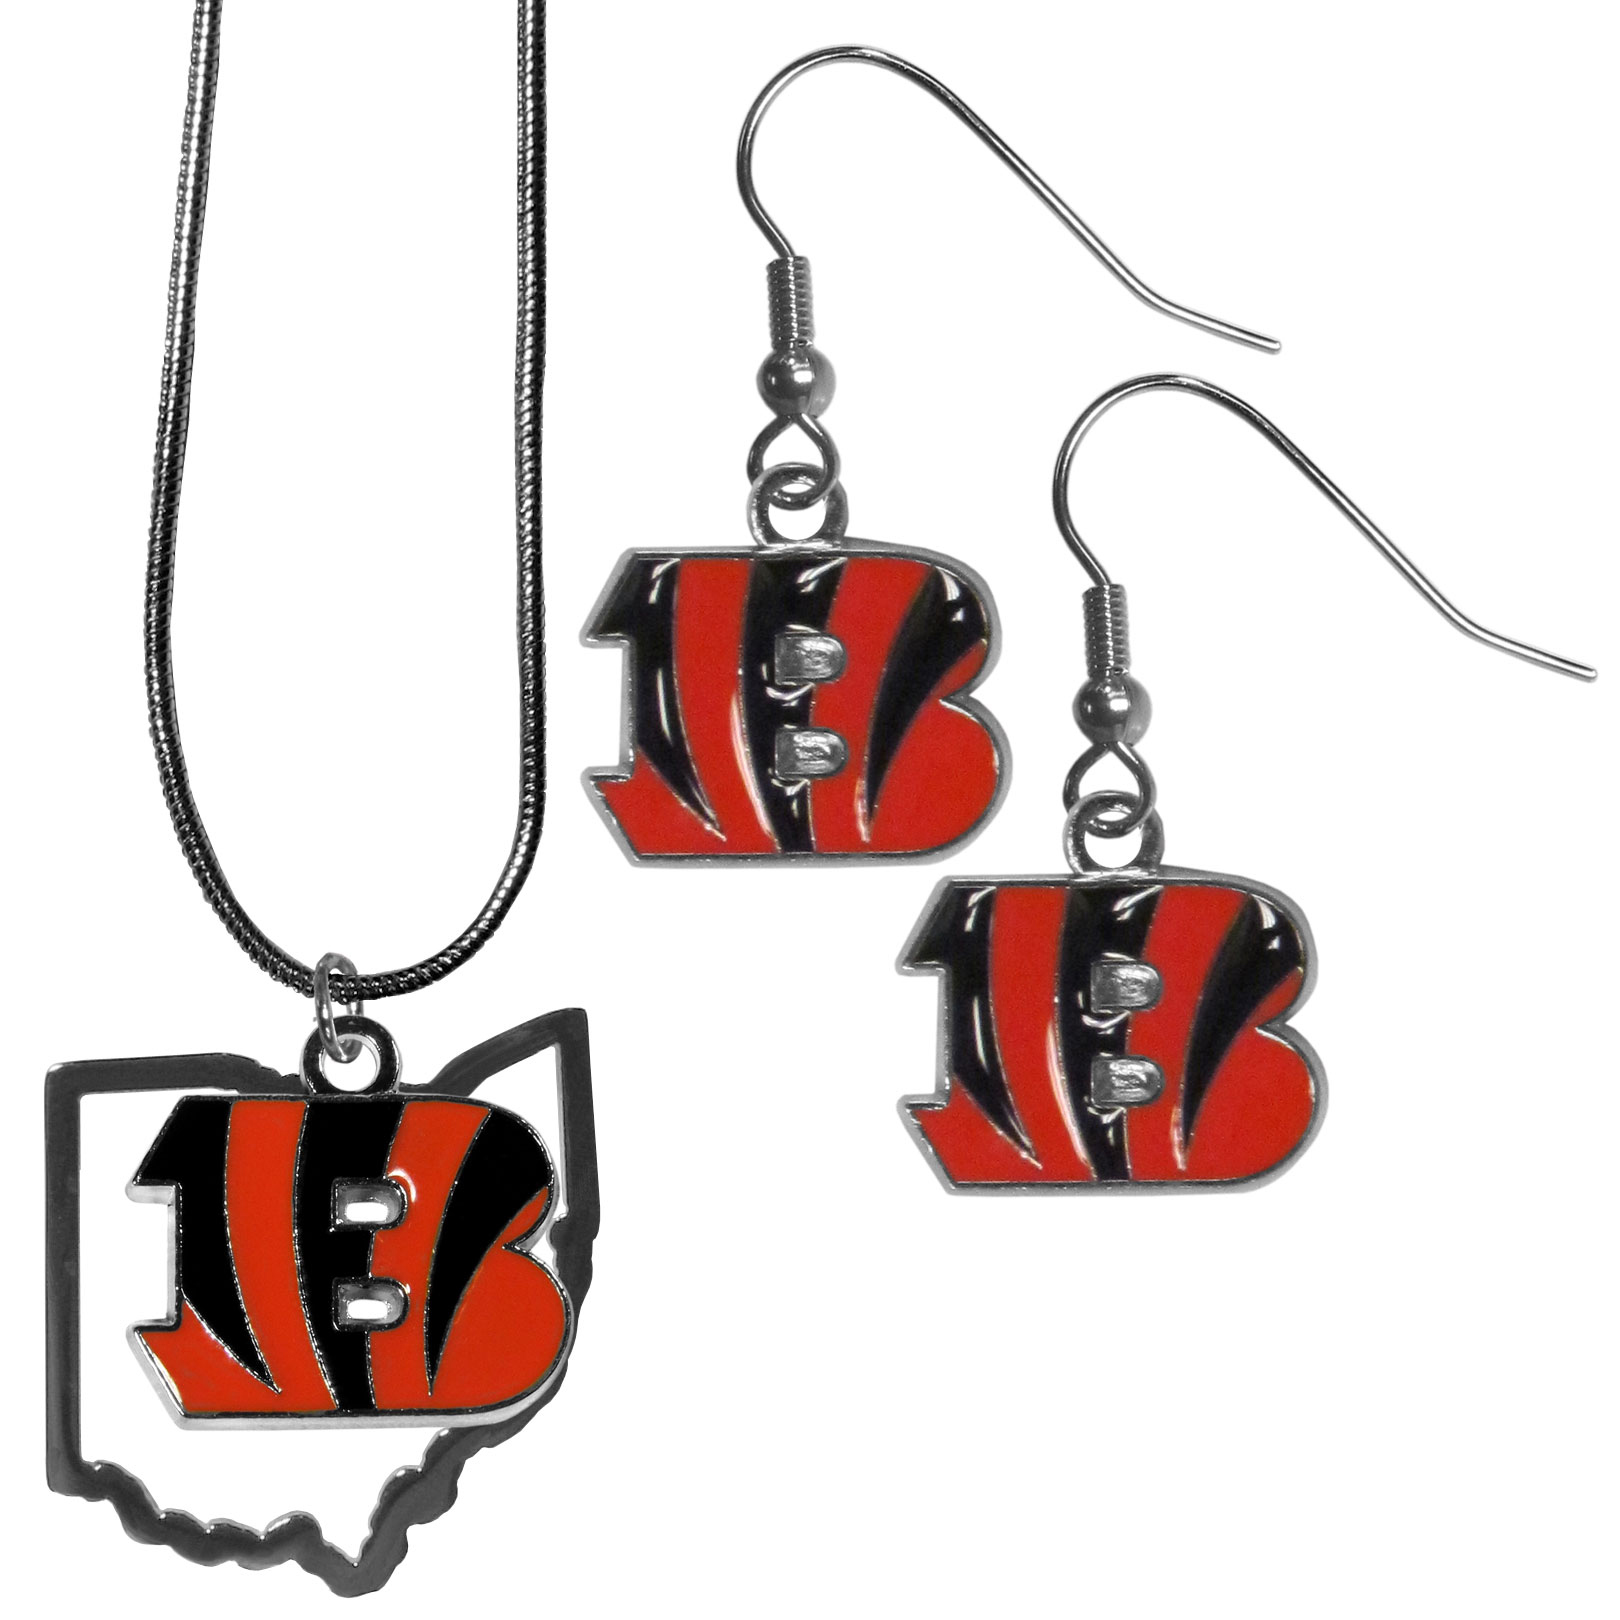 Cincinnati Bengals Dangle Earrings and State Necklace Set - Get in on the trend! State themes are a trend that just keeps getting more popular and this jewelry set takes the state style and give it a sporty twist with a Cincinnati Bengals necklace that features an Arizona state outline charm paired with a beautiful team charm and matching team charm dangle earrings. The earrings feature hypoallergenic fishhook posts that are nickel free.